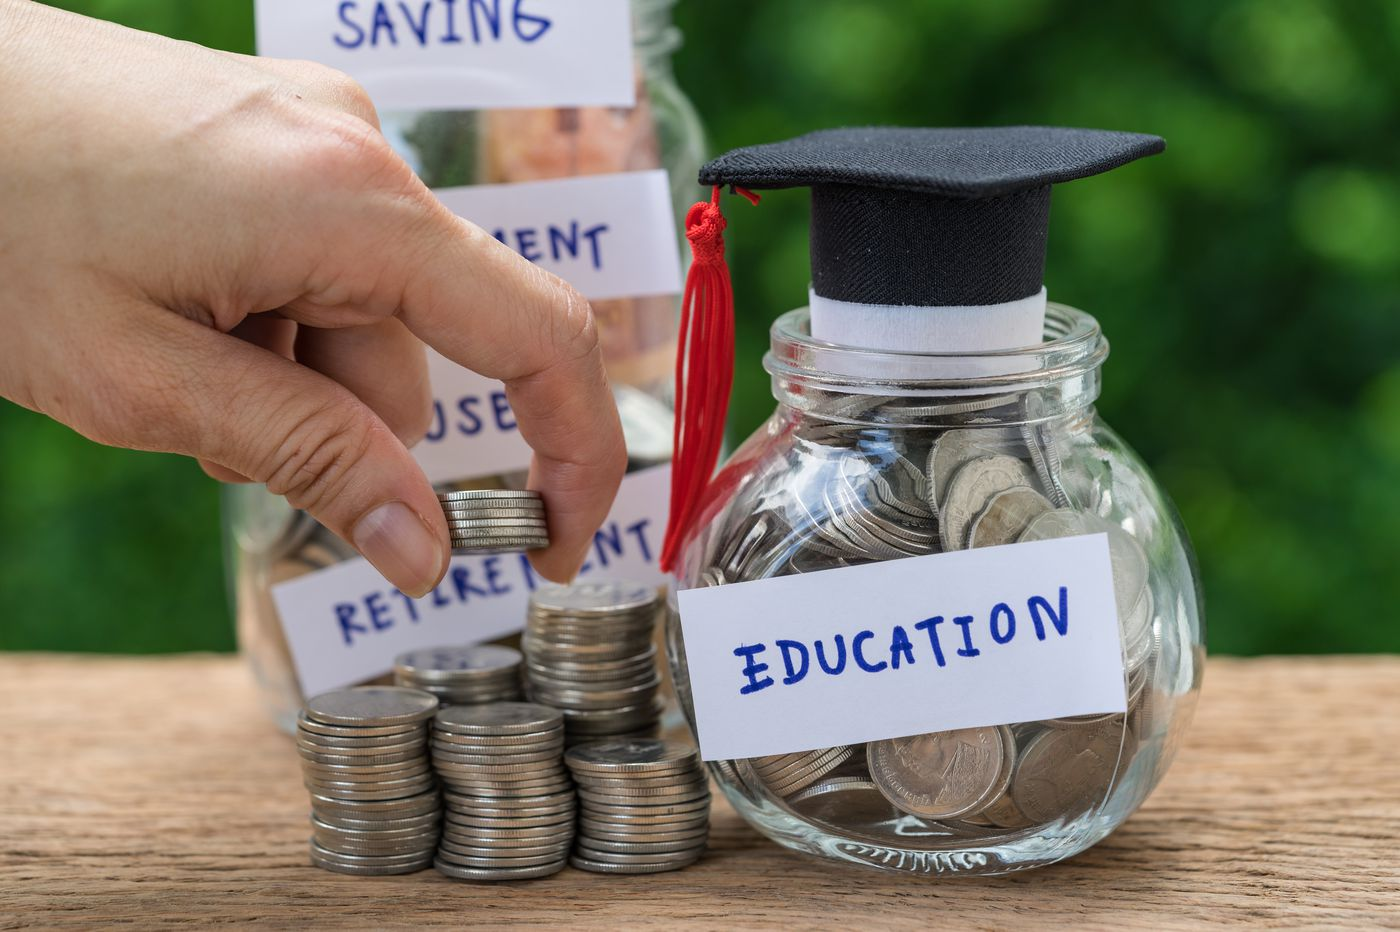 Parents, do you steal your retirement money to pay for college?